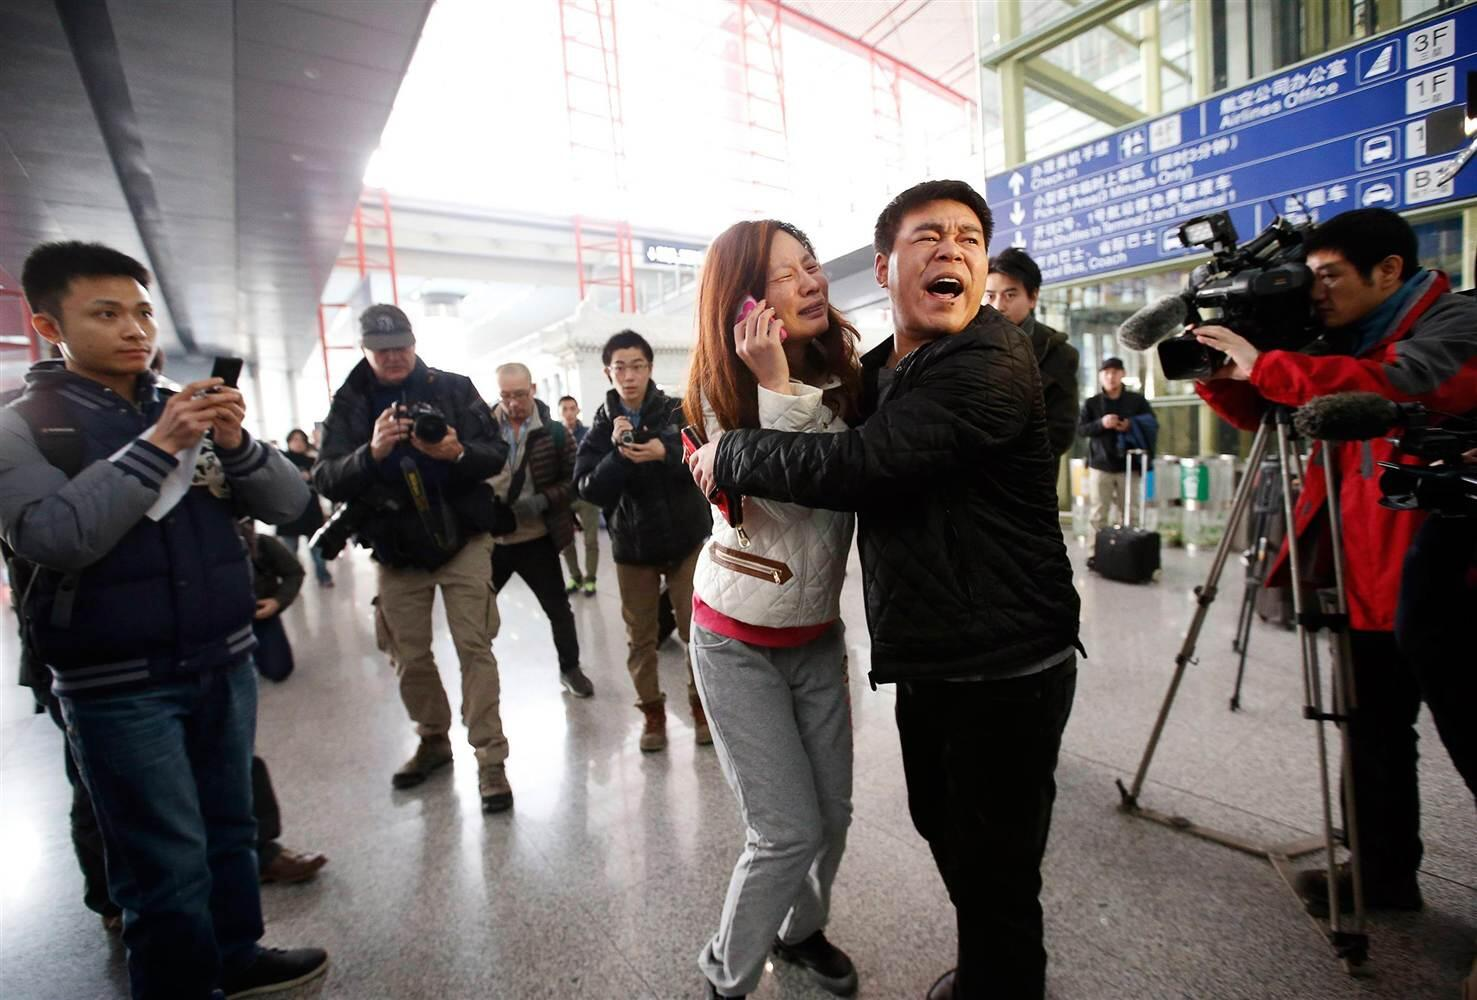 RT @NBCNews: PHOTOS: Families await news of Malaysia Airlines flight in Beijing http://t.co/urBS1Vu5tT http://t.co/ryhCEZwEEX Just awful